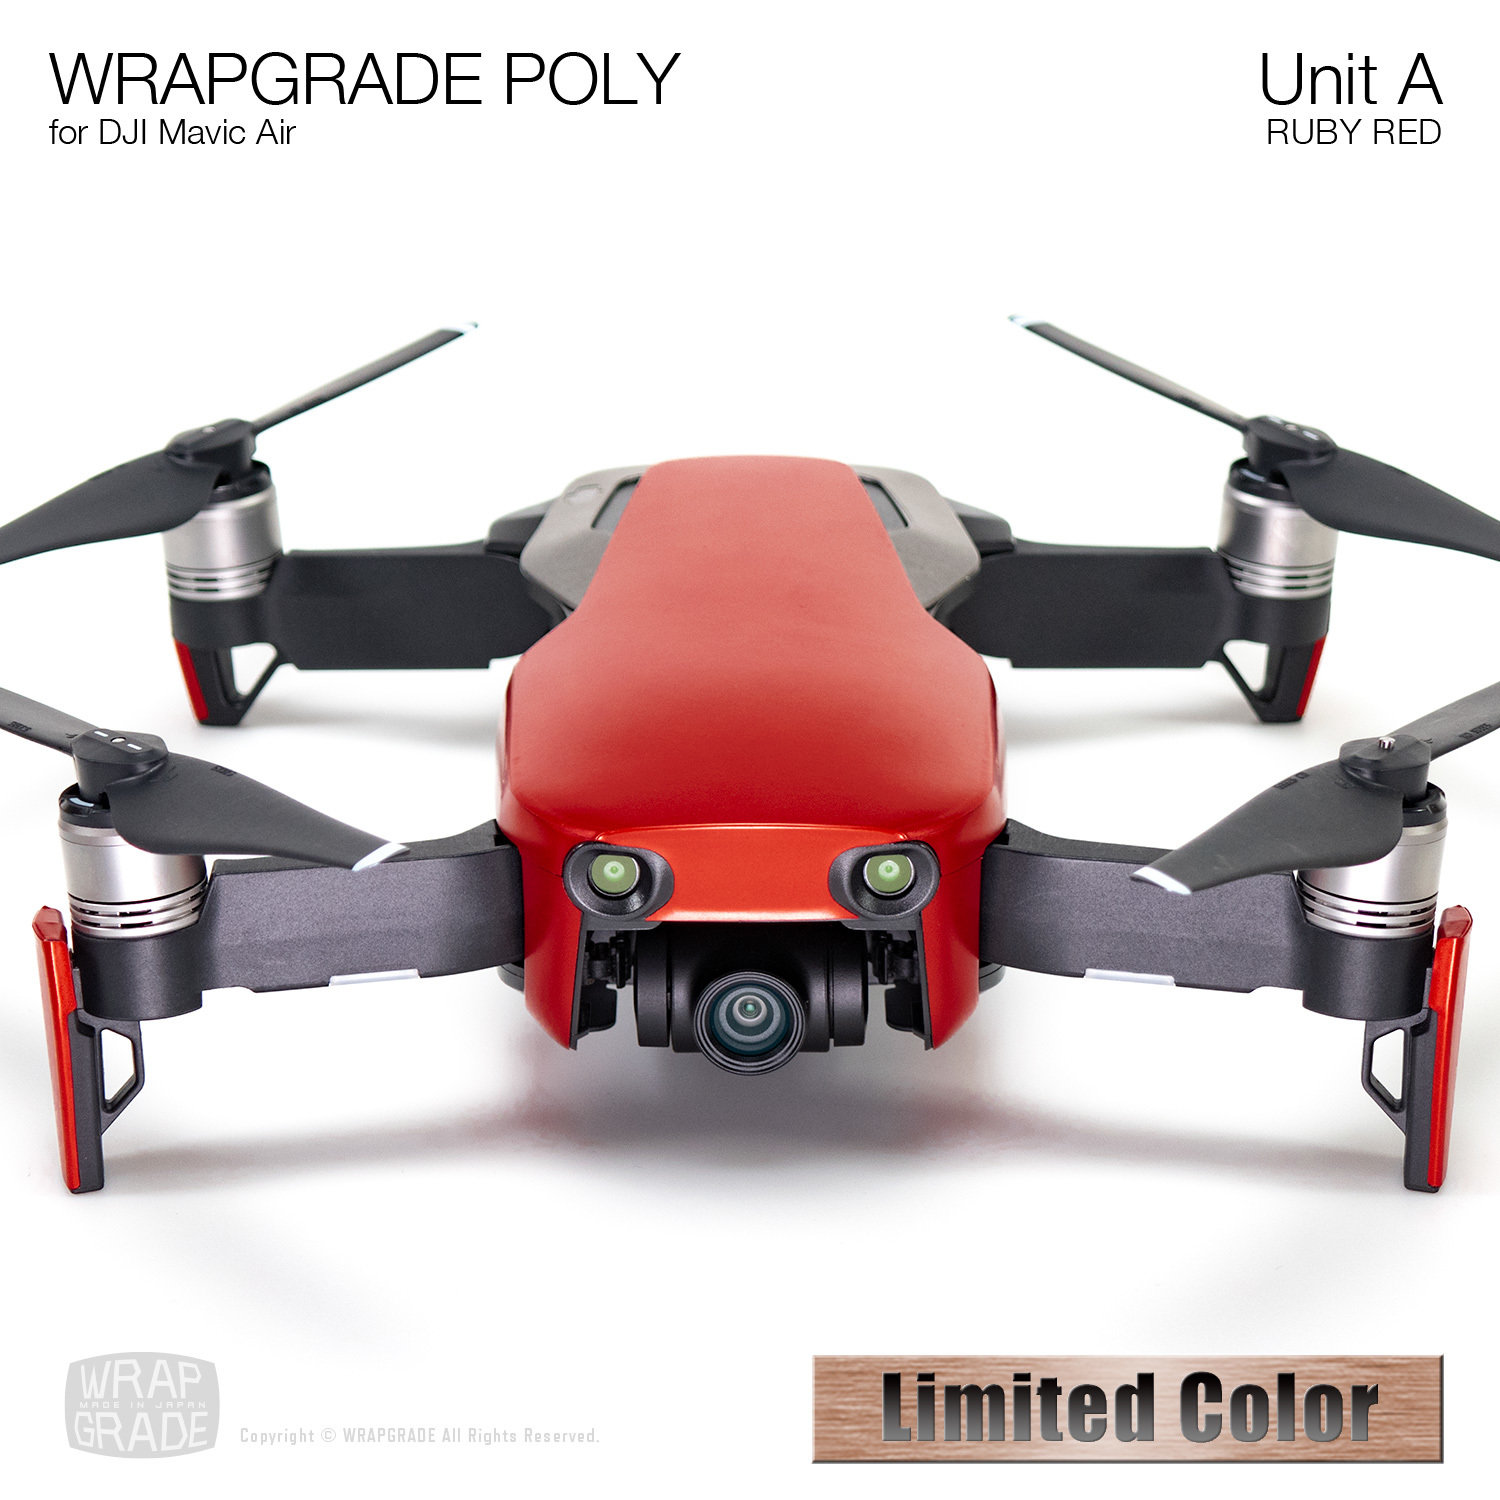 Wrapgrade Poly Skin for DJI Mavic Air | Unit A (RUBY RED)